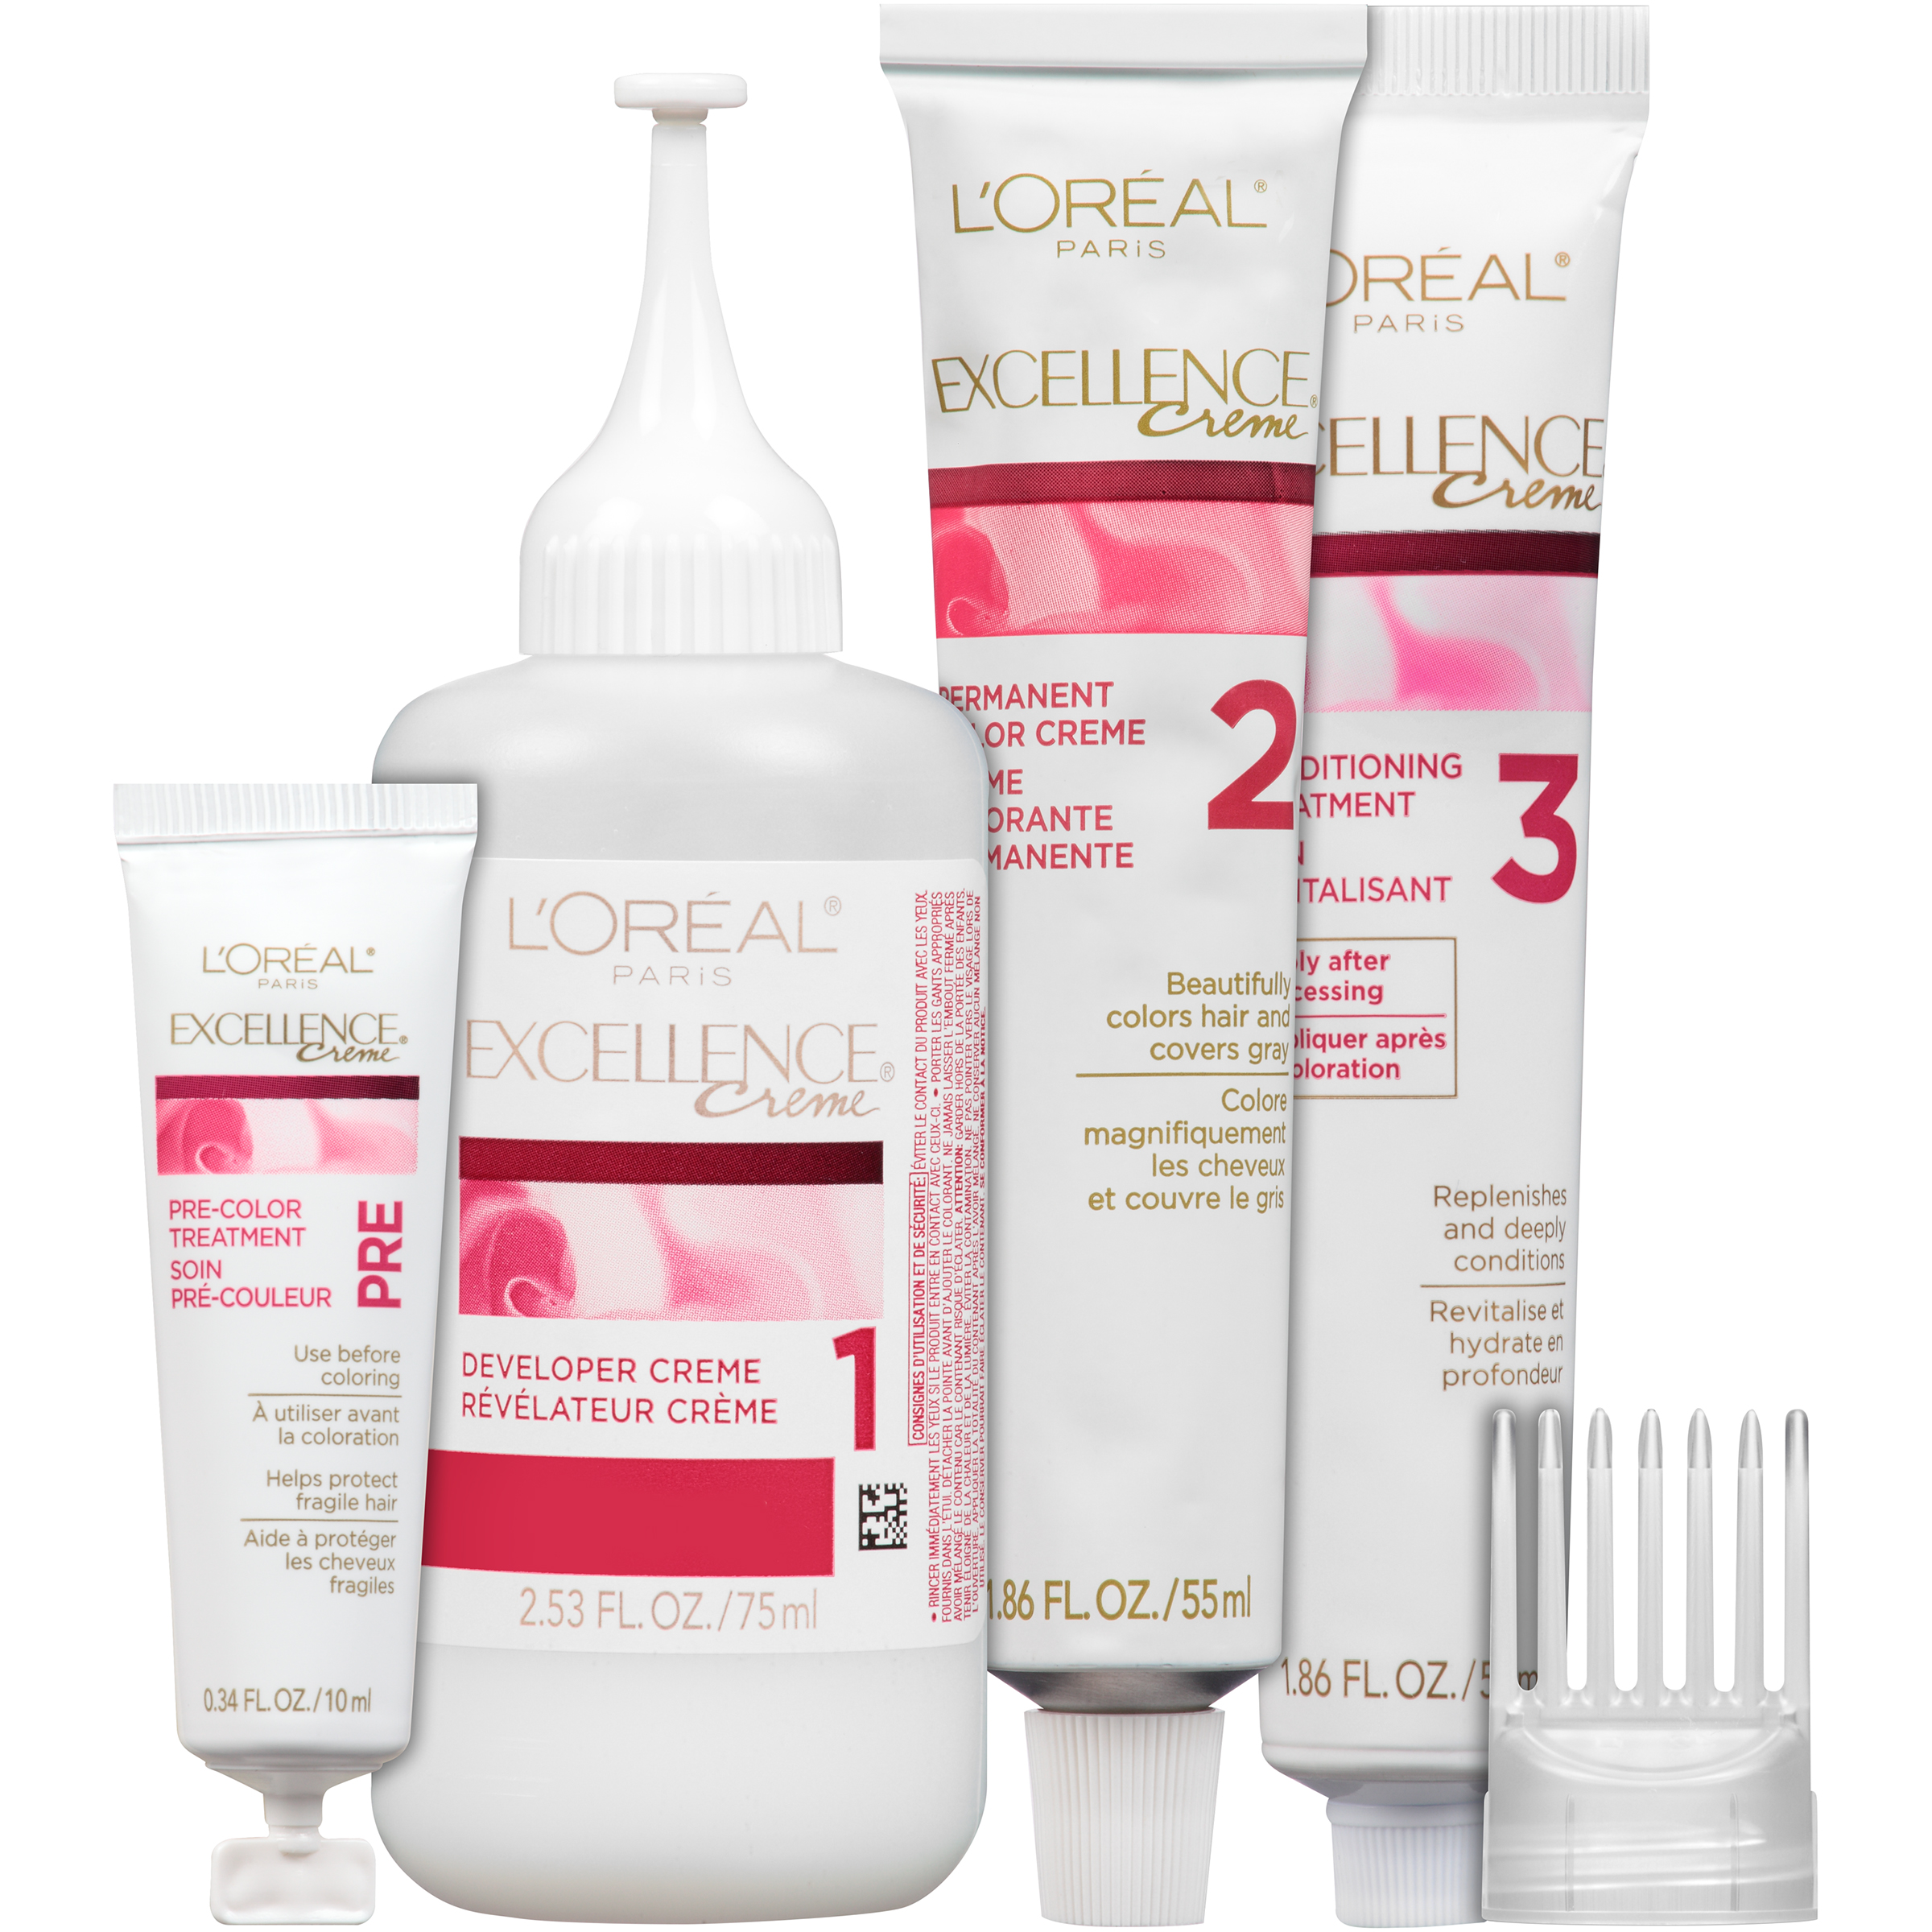 L'Oral Paris Excellence Crme Permanent Hair Color